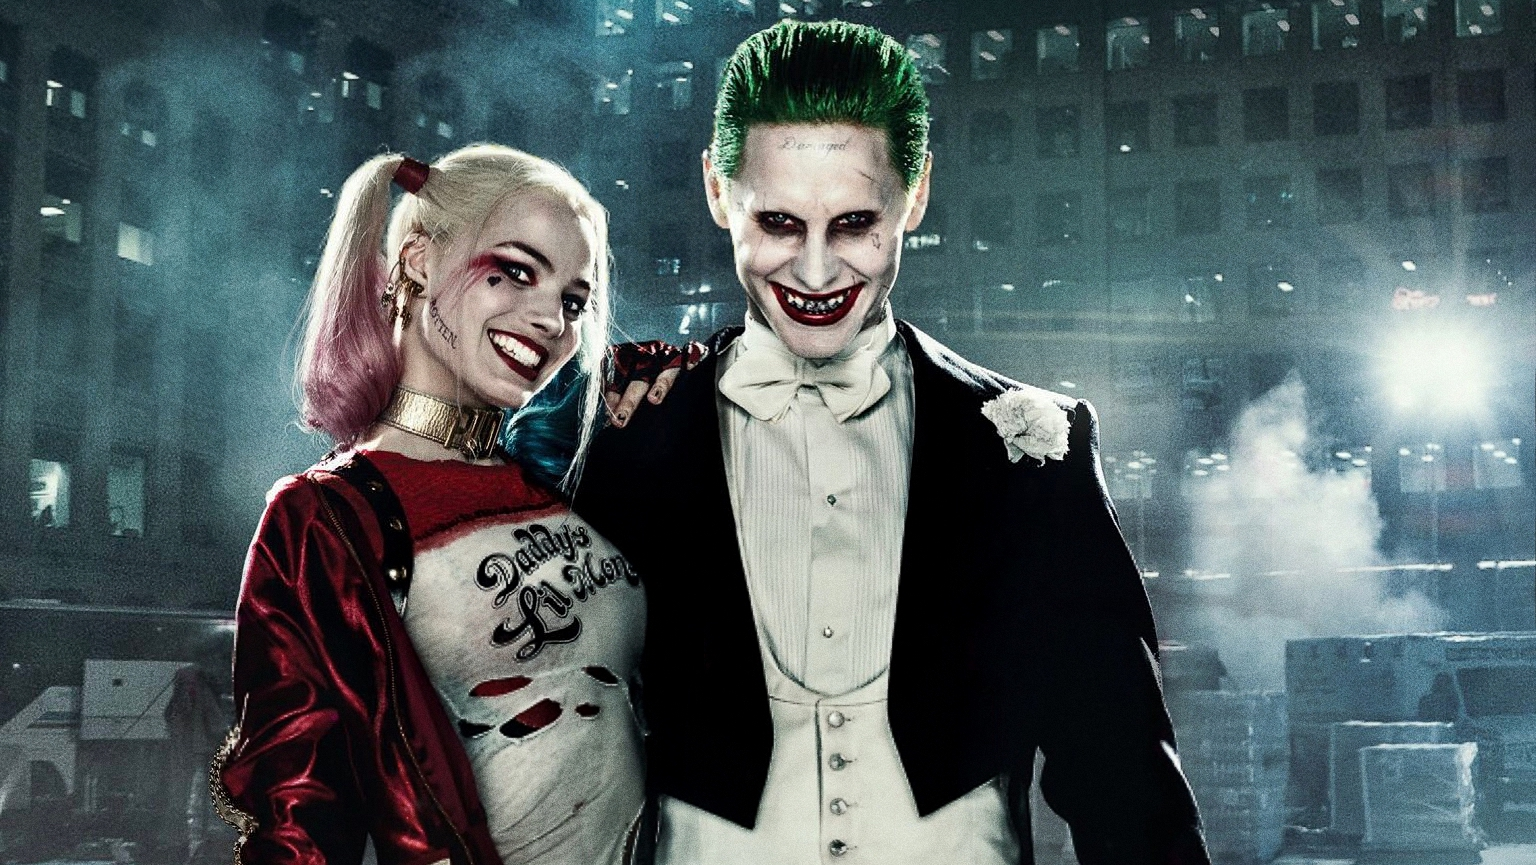 Joker and Harley Quinn Suicide Squad F